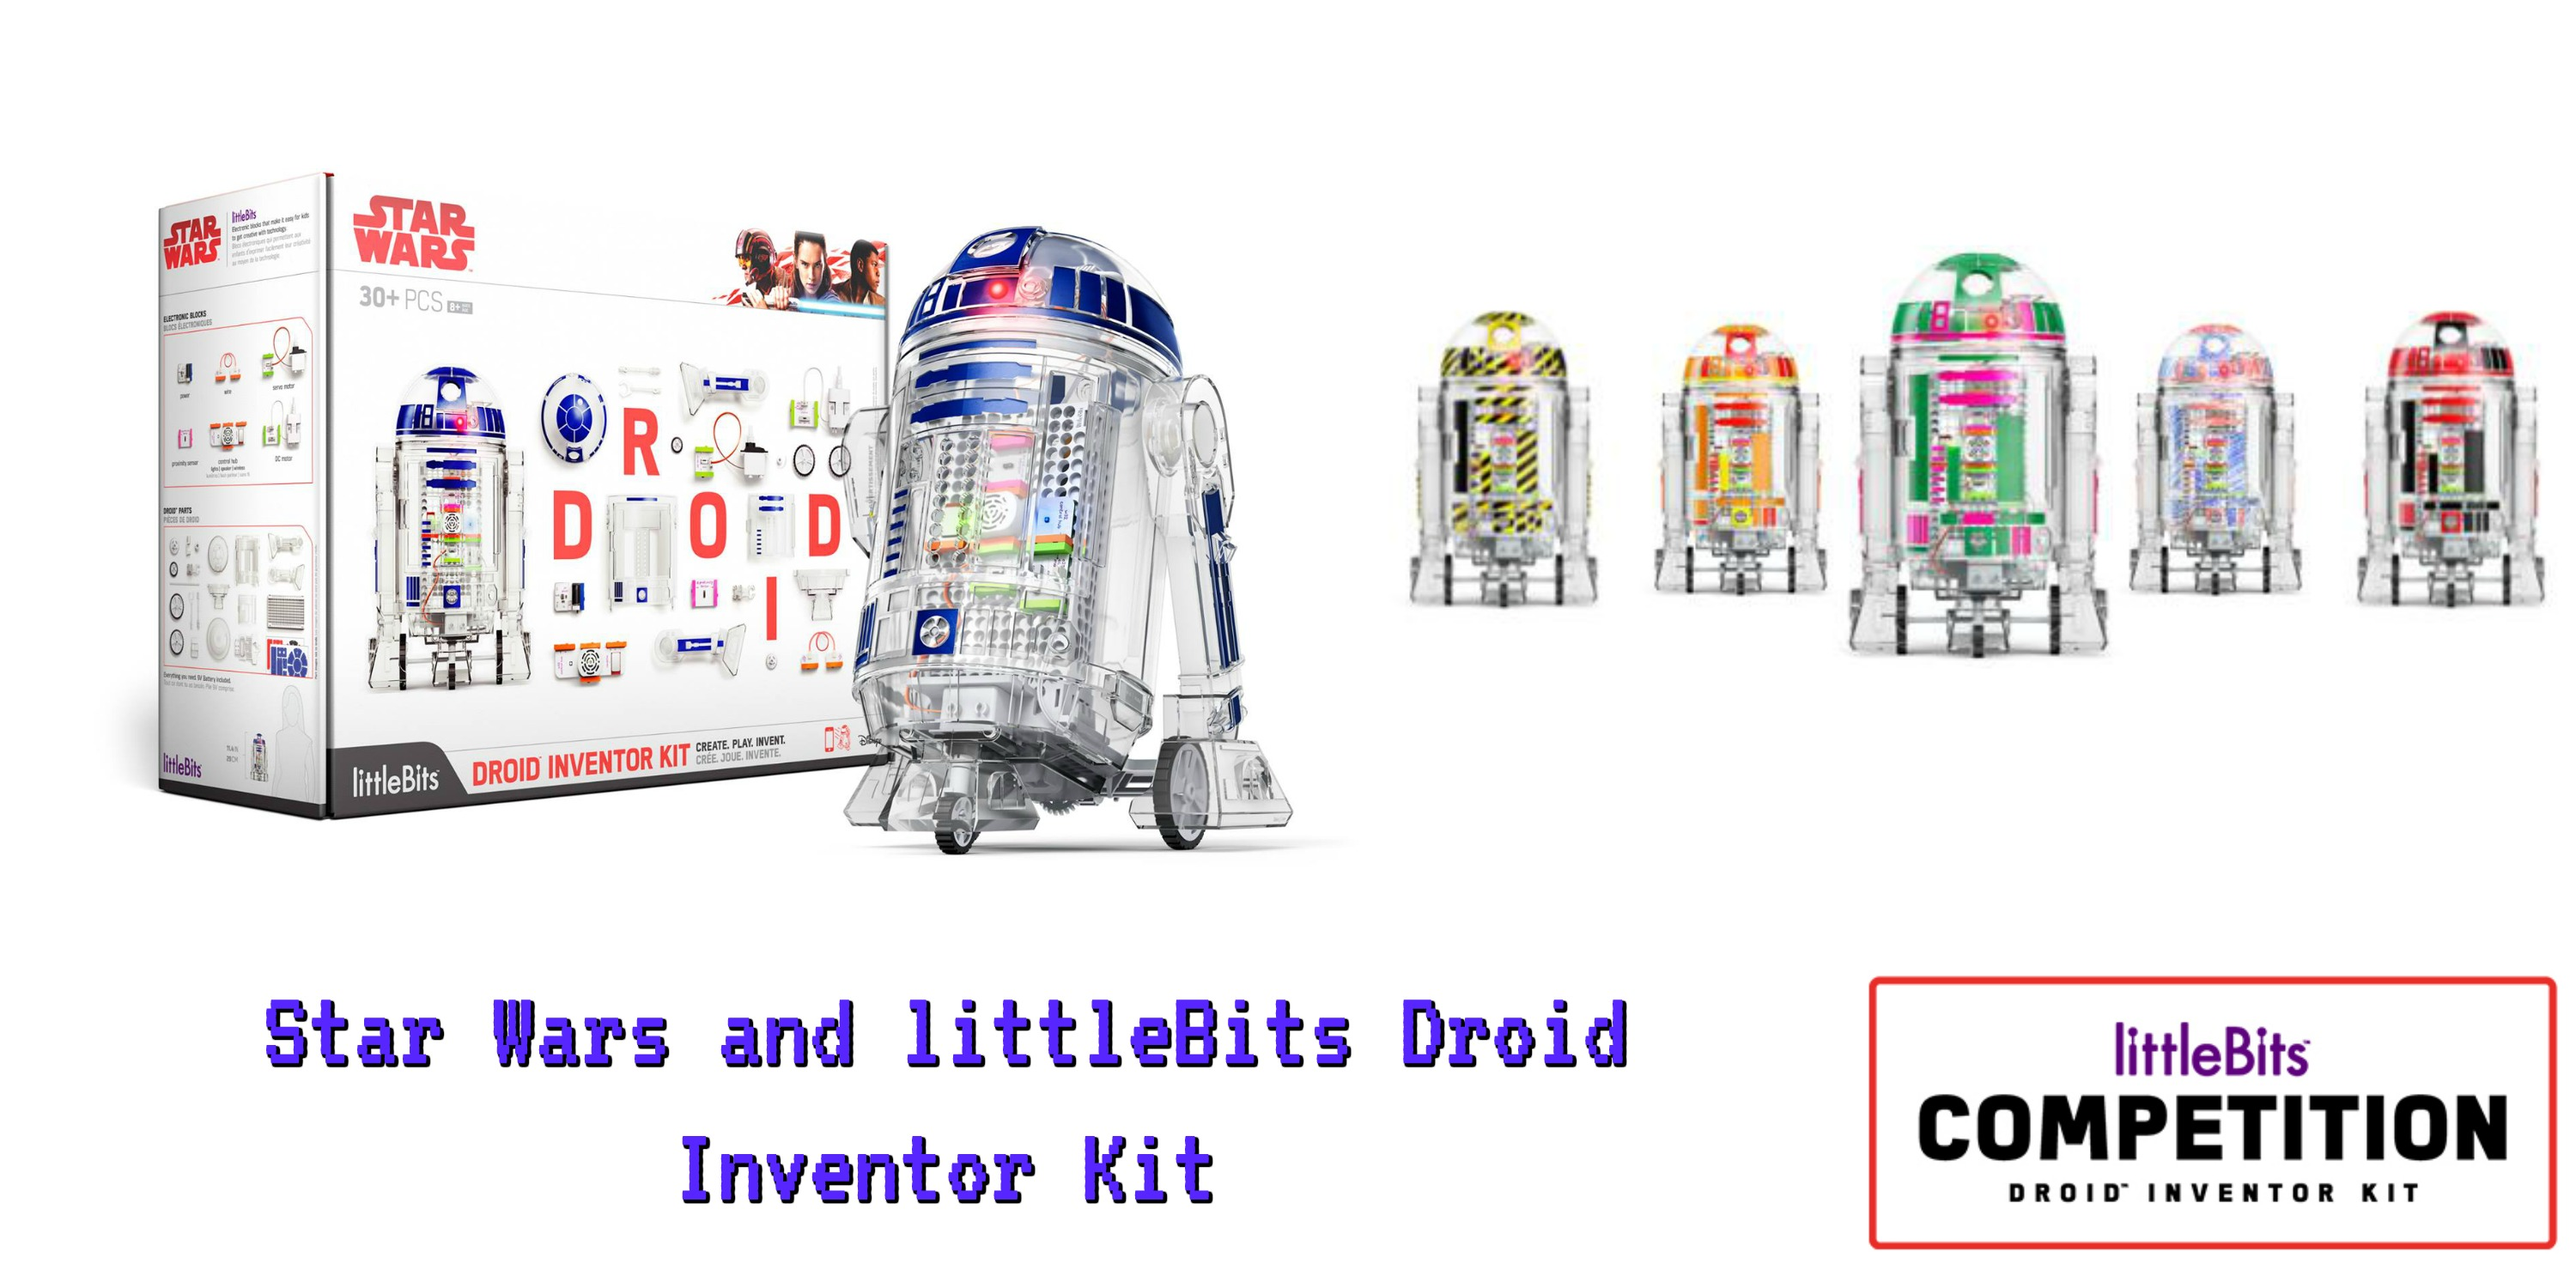 Star Wars and littleBits Droid Inventor Kit with